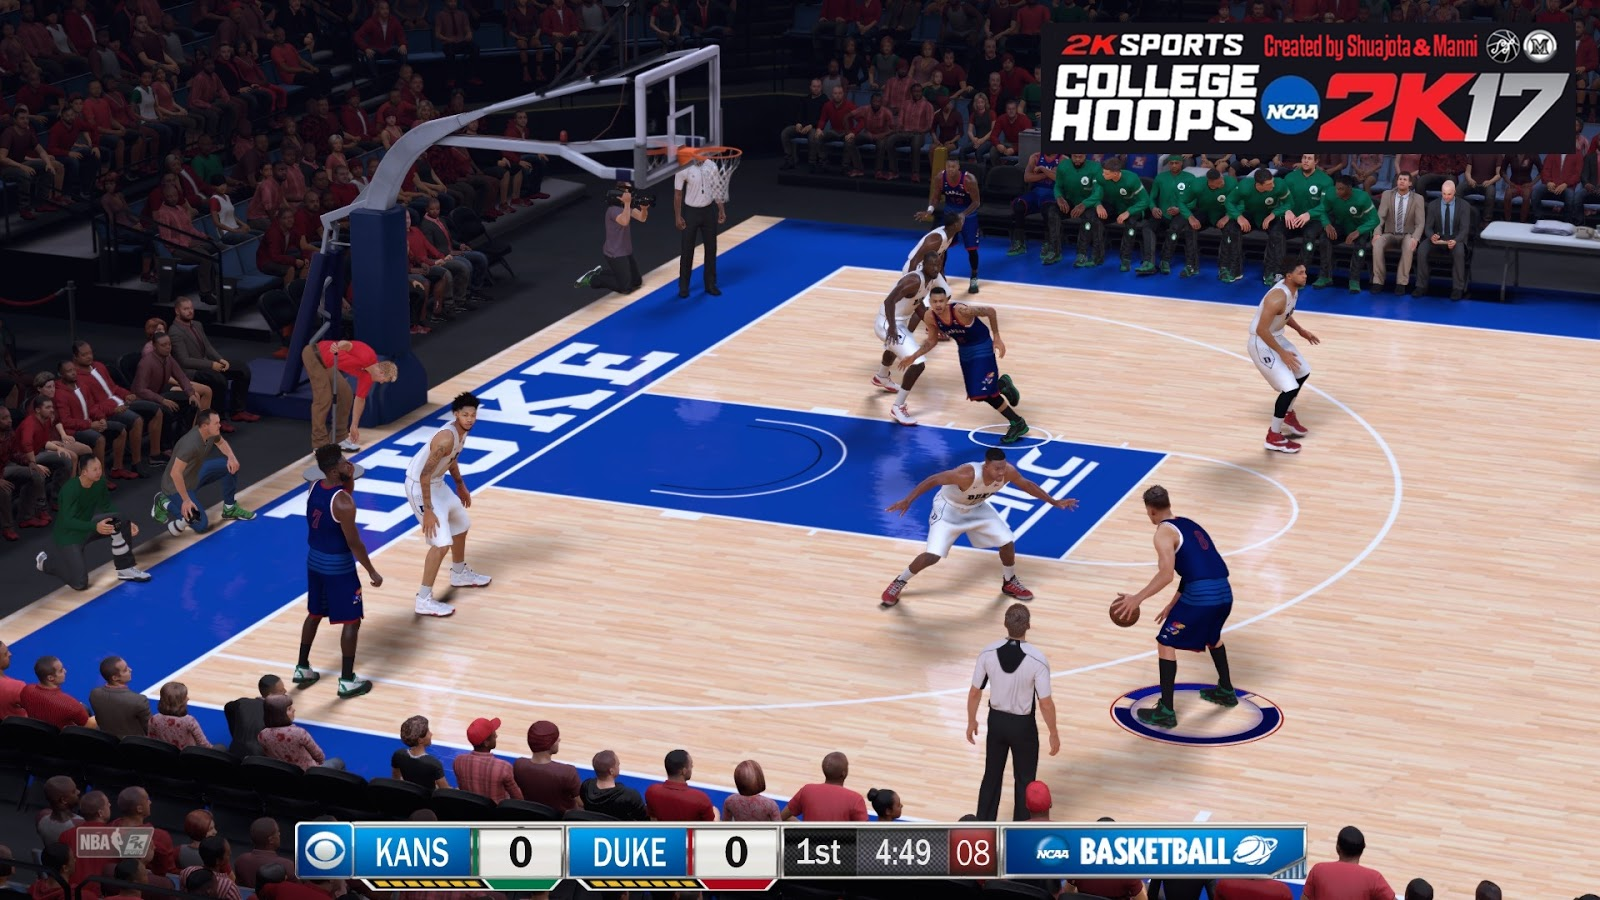 College Hoops 2K17 (Coming Soon) - NBA 2K17 at ModdingWay